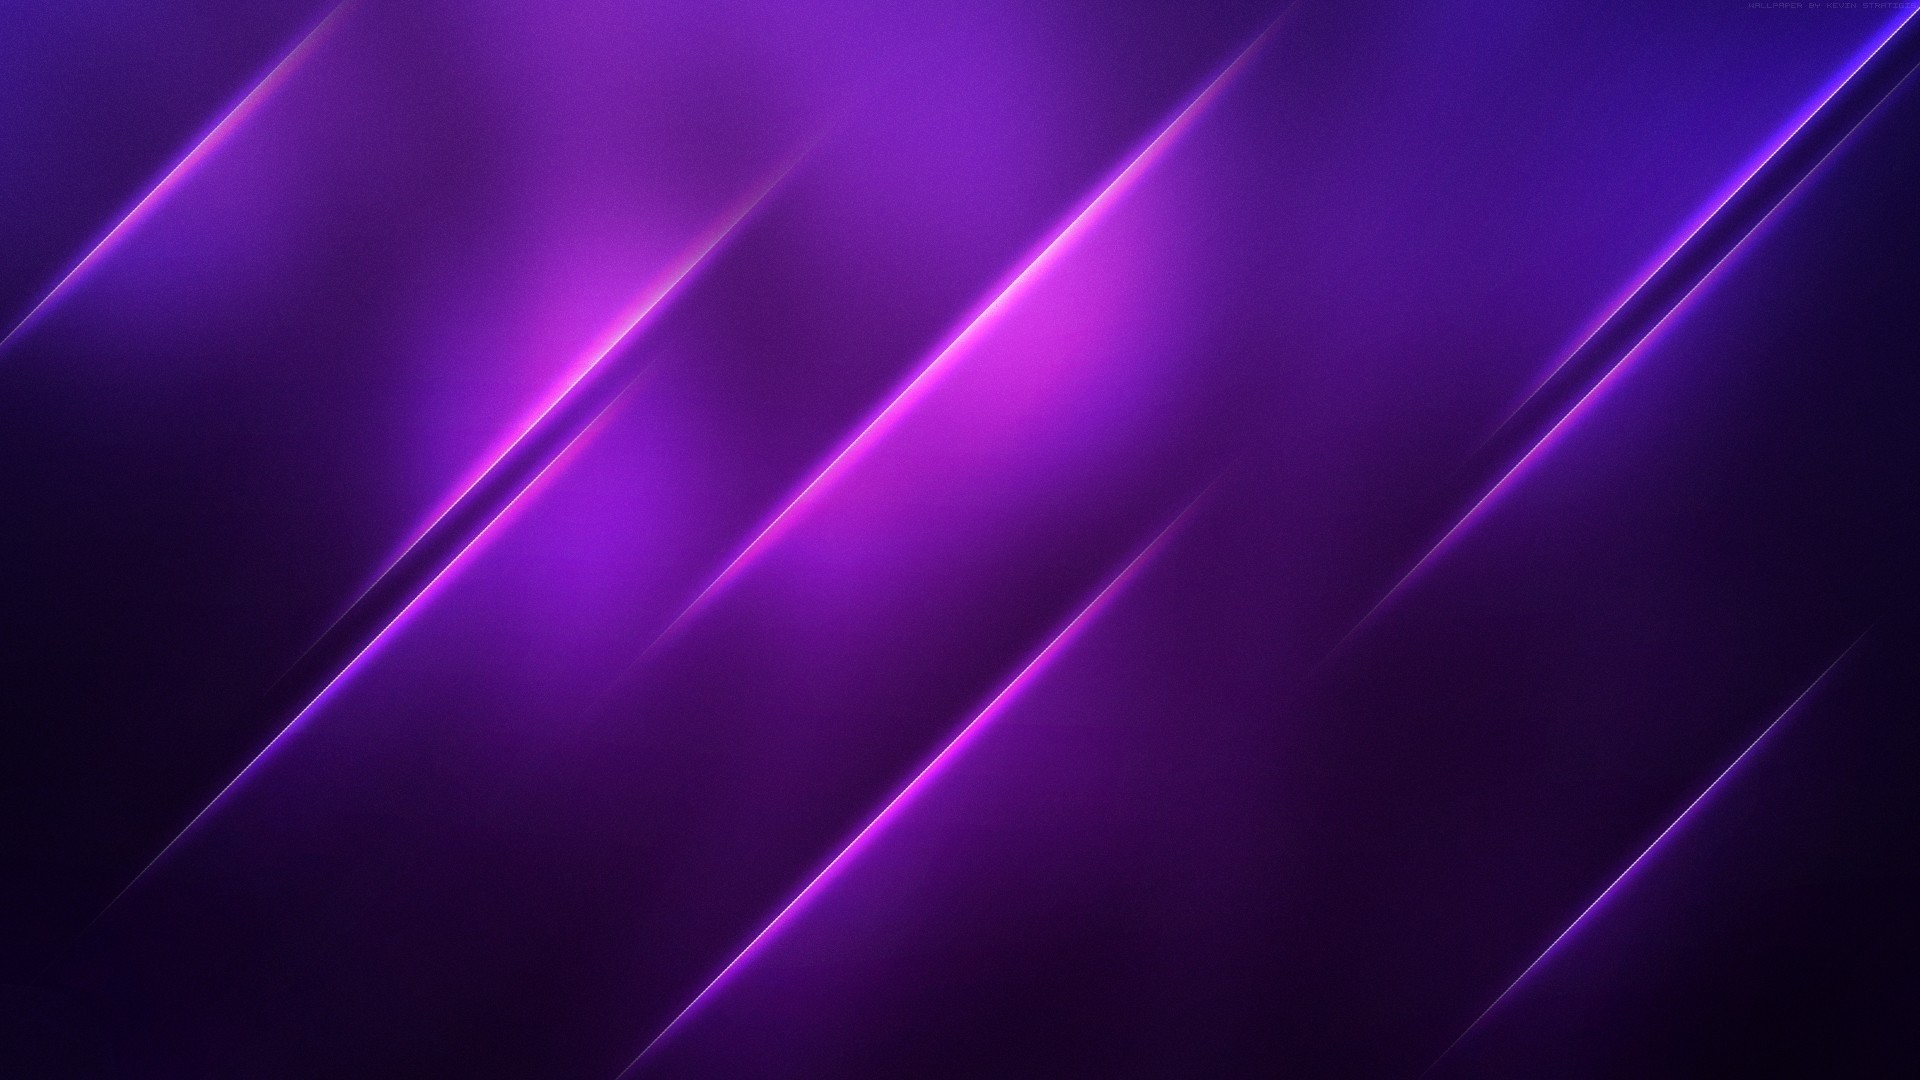 1920x1080 Neat Purple Backgrounds 18538